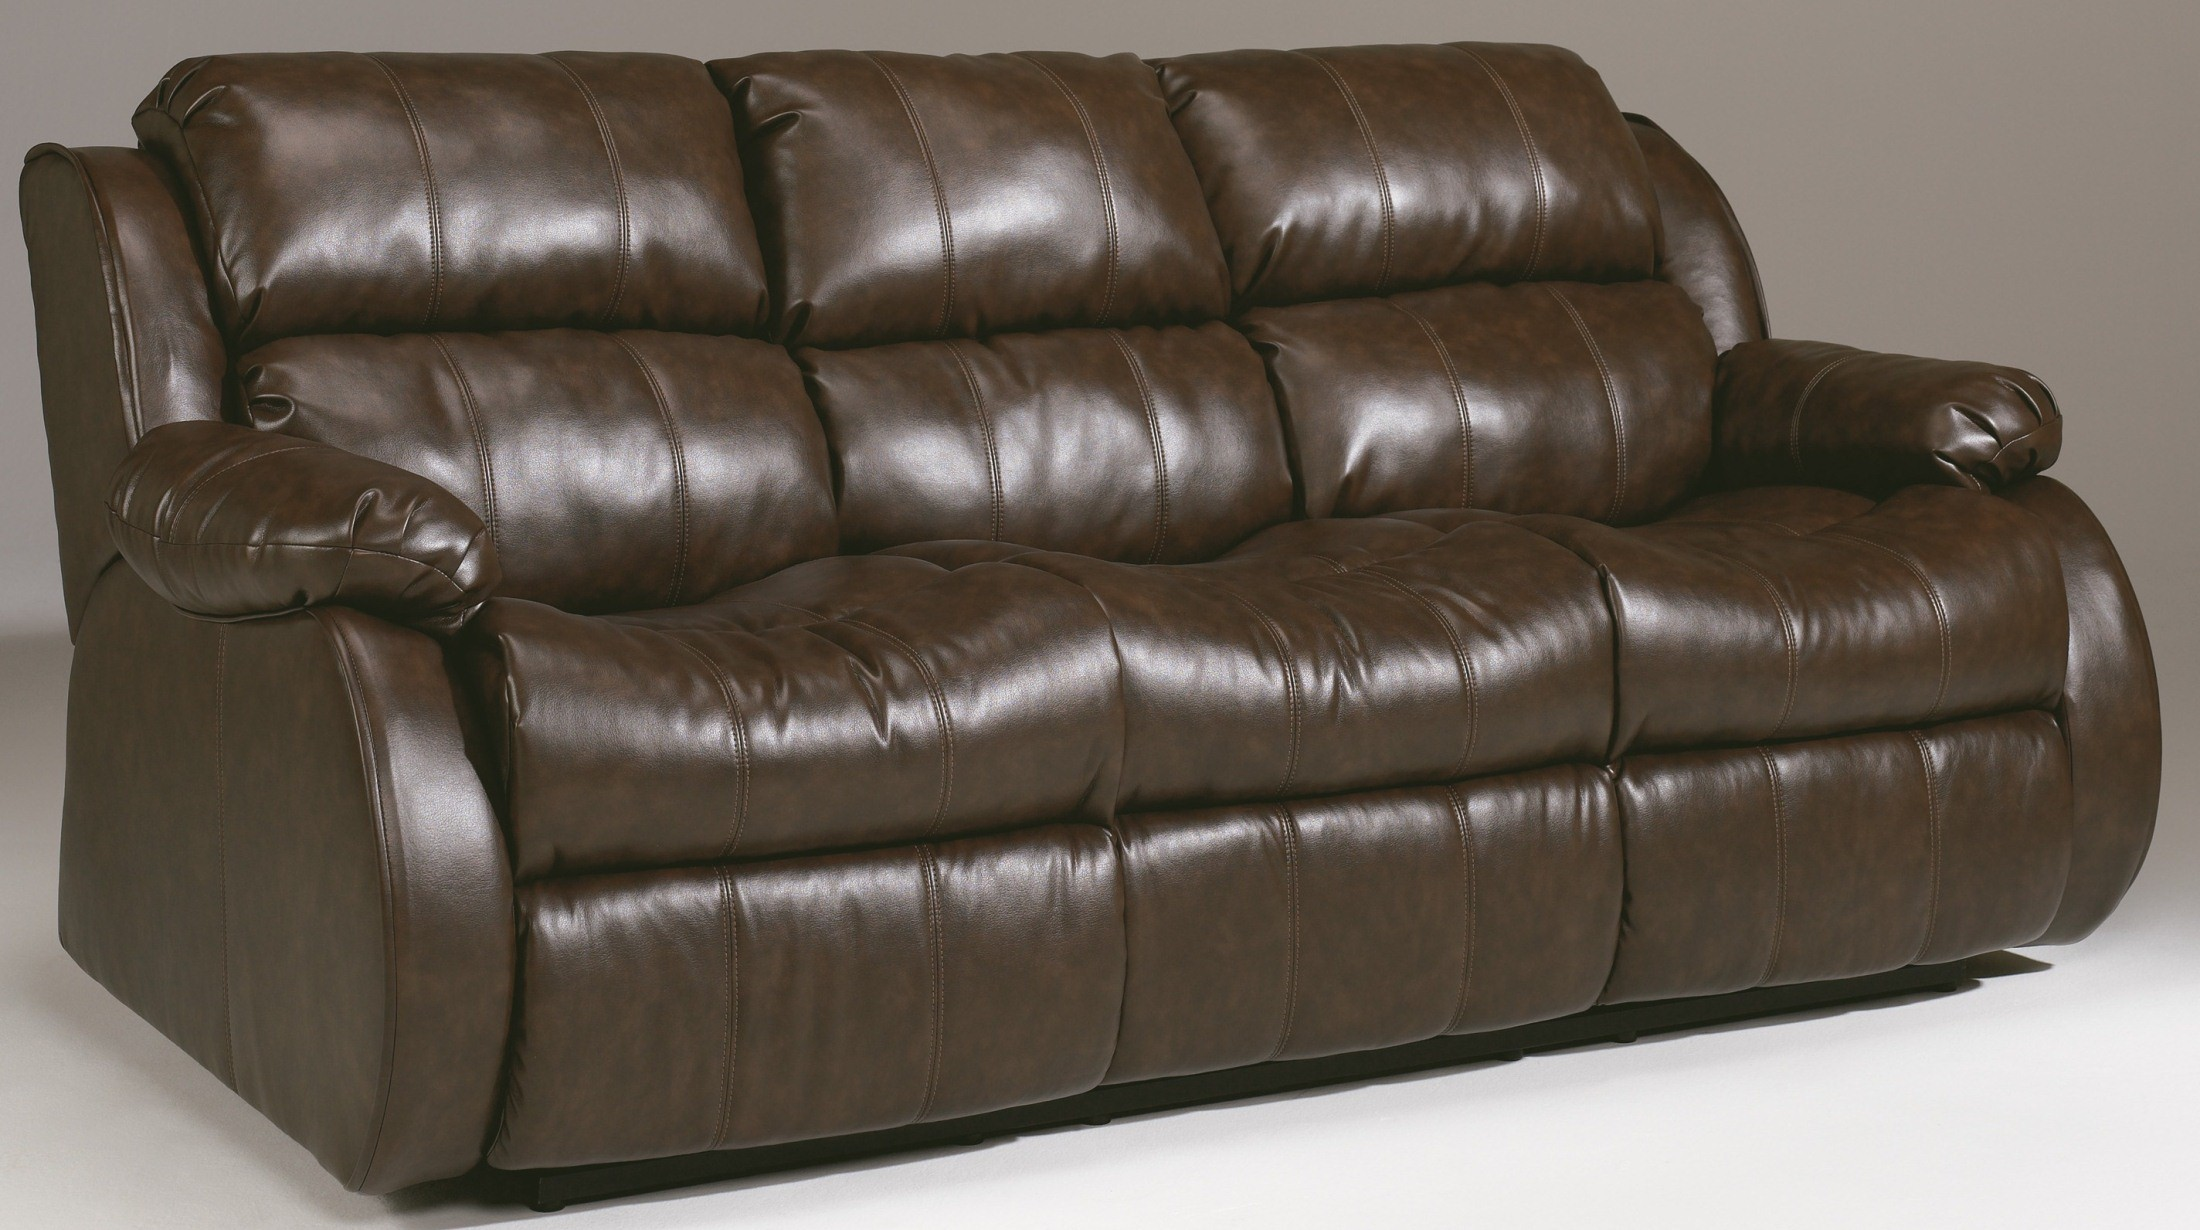 Massage Sofa Mollifield Durablend Cafe Reclining Dual Massage Sofa From